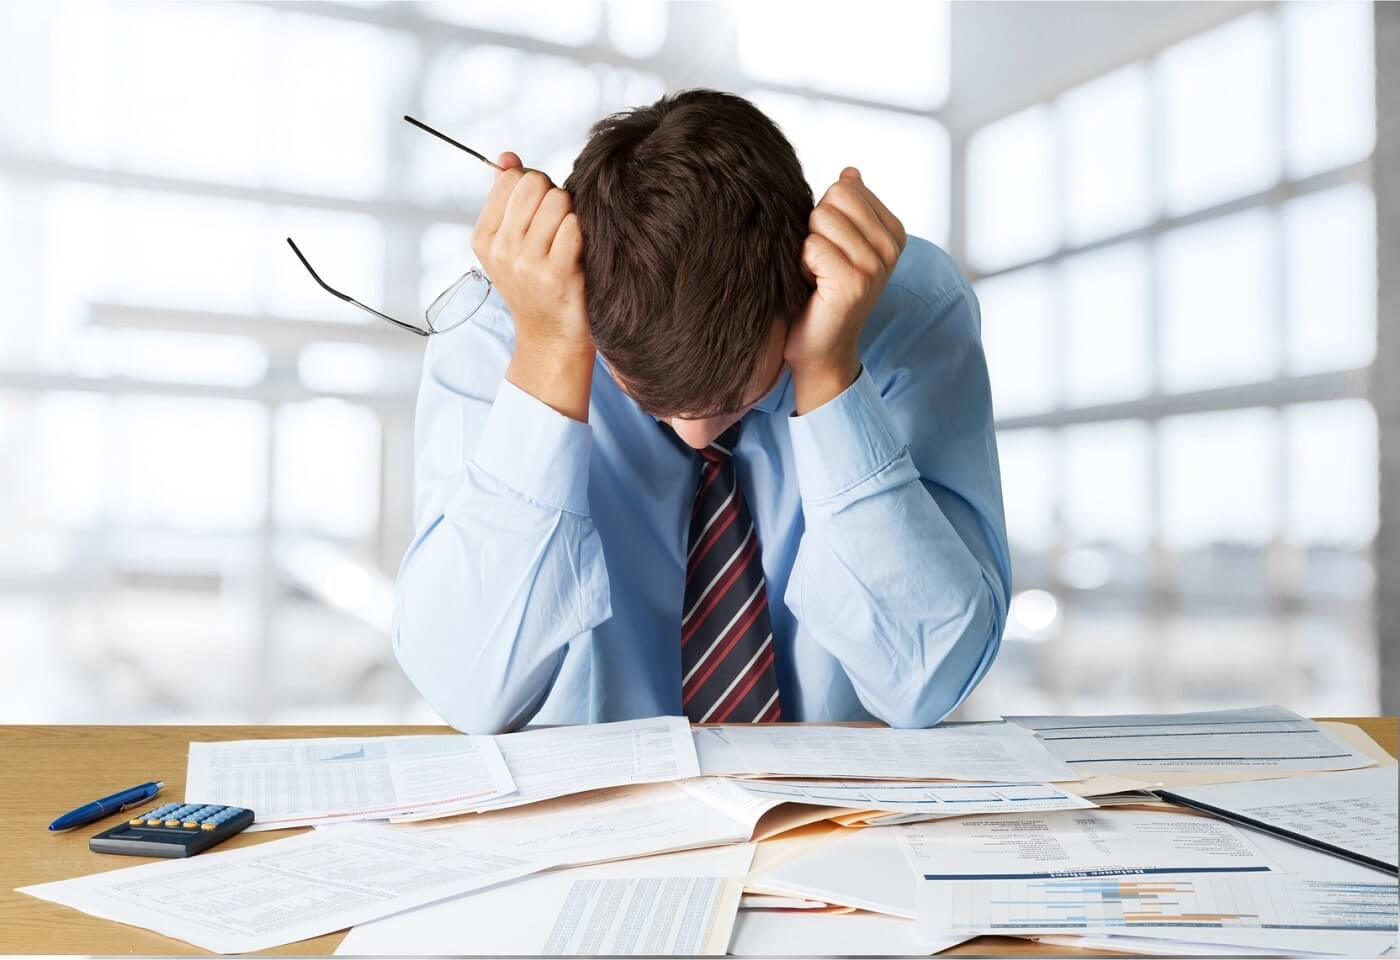 person-looking-over-finances-during-bankruptcy